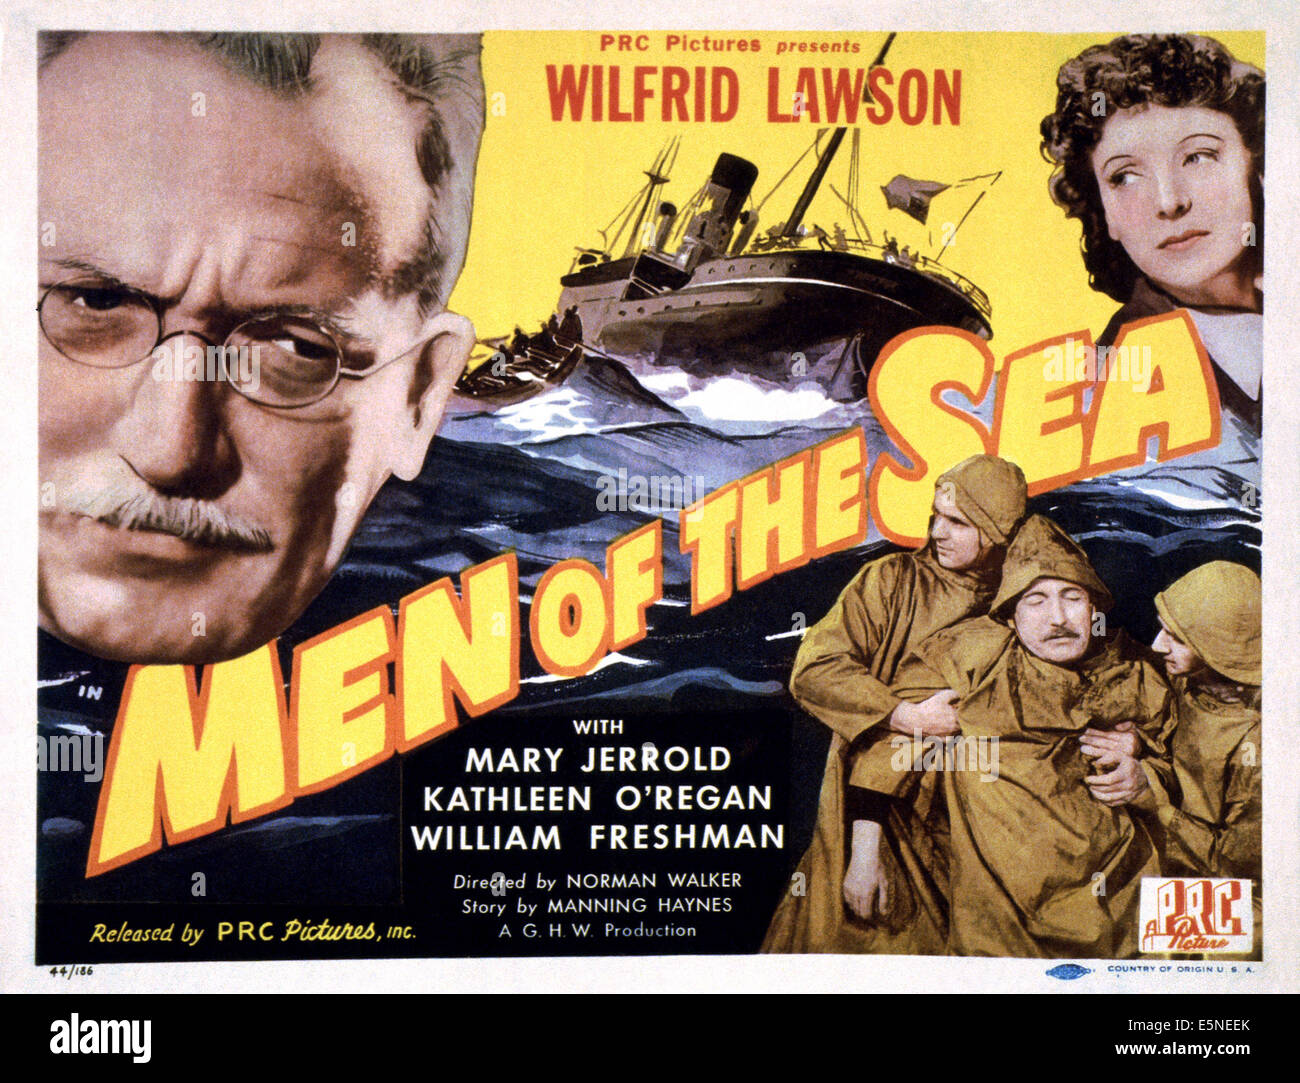 THE MAN AT THE GATE, (aka MEN OF THE SEA), US lobbycard, Wilfrid Lawson (left), 1941Stock Photo